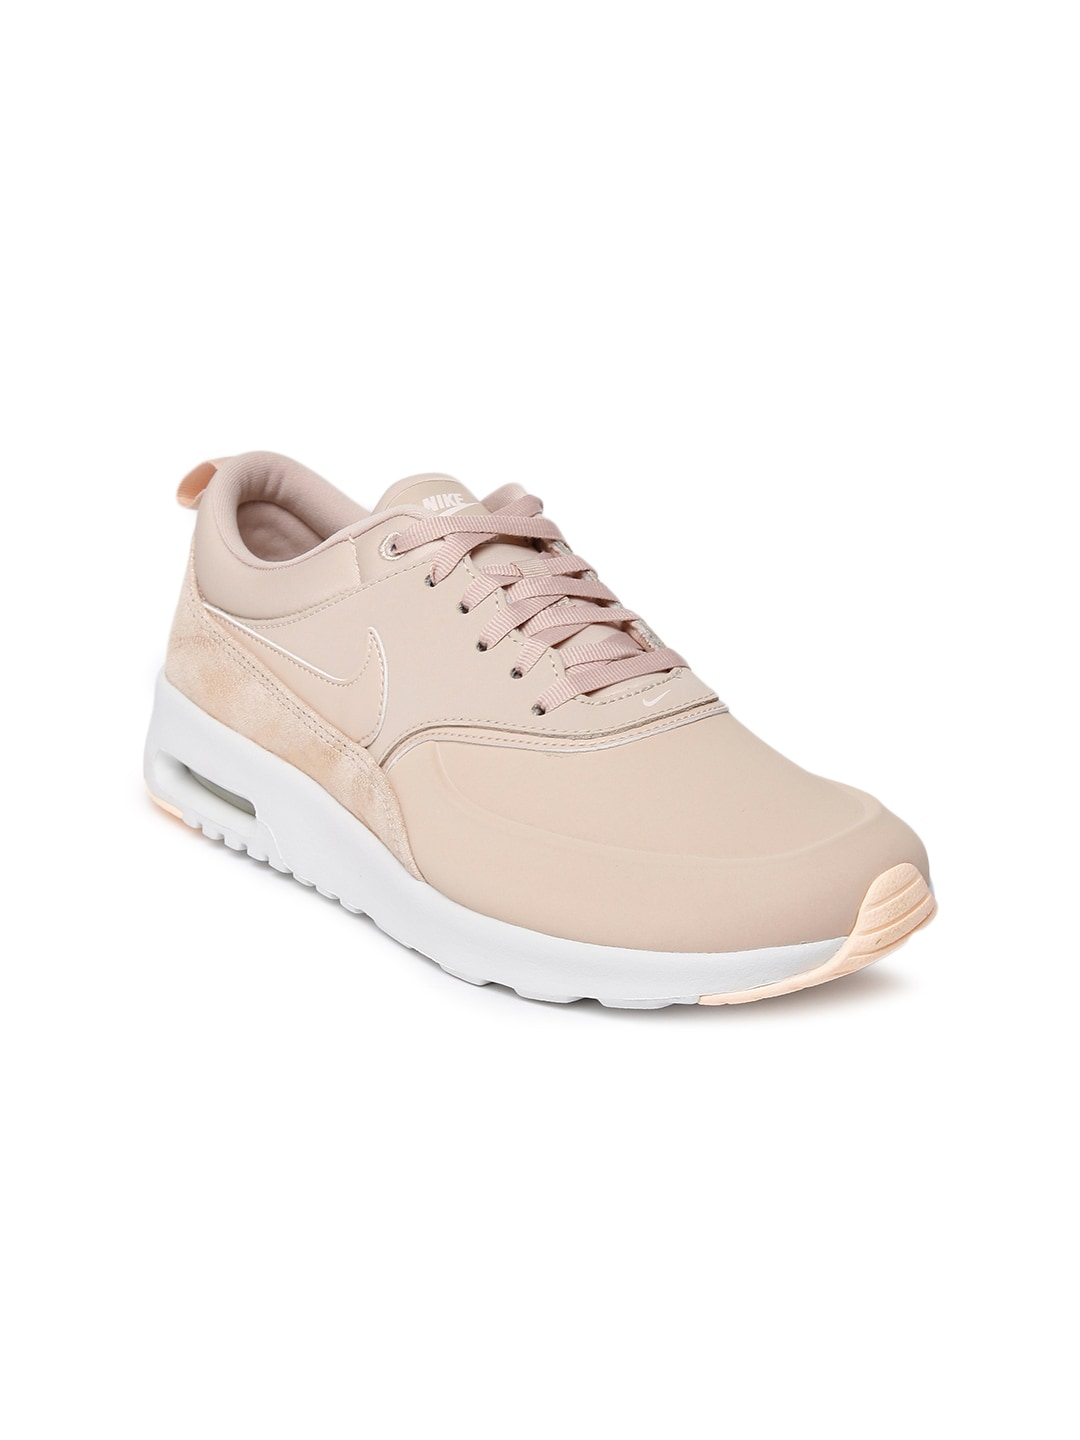 size 40 e1ede 3df27 Nike - Shop for Nike Apparels Online in India   Myntra